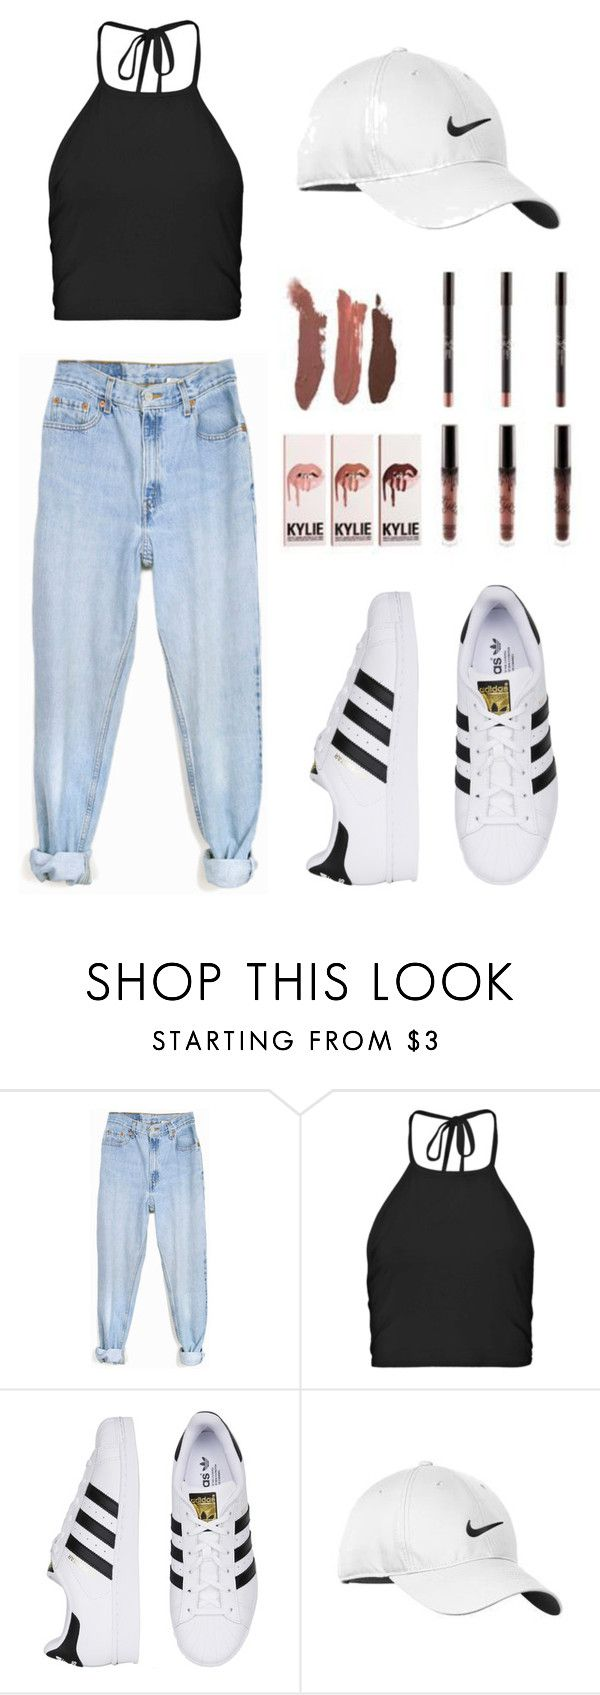 """Baddie"" by elaaphant ❤ liked on Polyvore featuring Levi's, Nike Golf, women's clothing, women, female, woman, misses, juniors, tumblr and baddie"